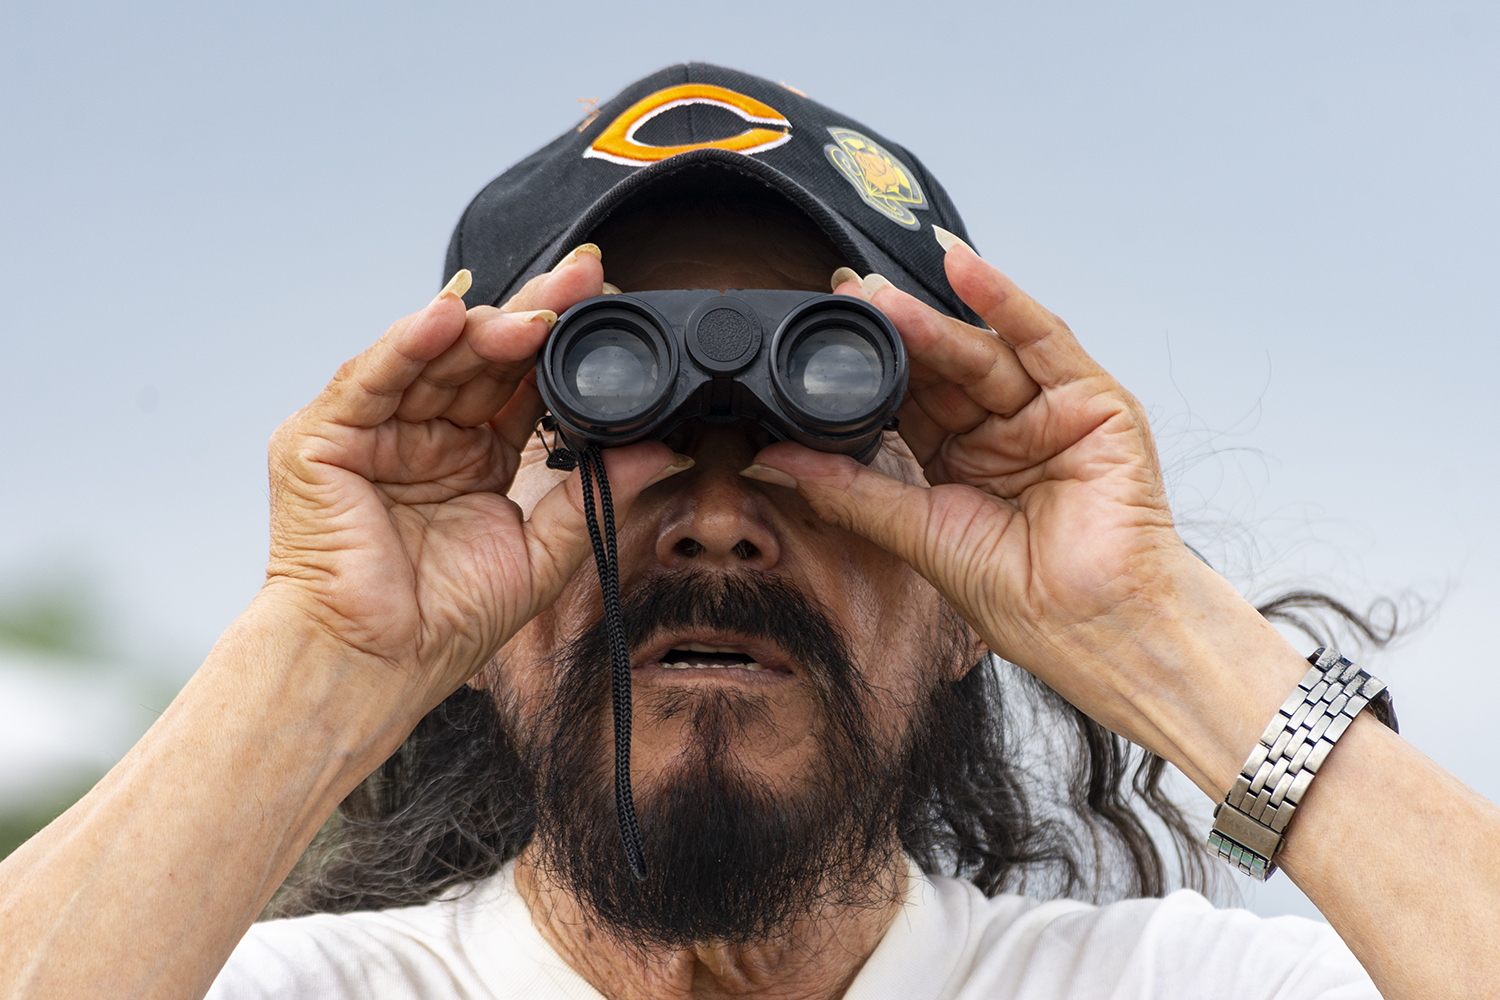 Numerous+spectators+used+binoculars+to+view+the+aircraft+in+the+show+as+they+passed+by+North+Avenue+Beach+Aug.+17.